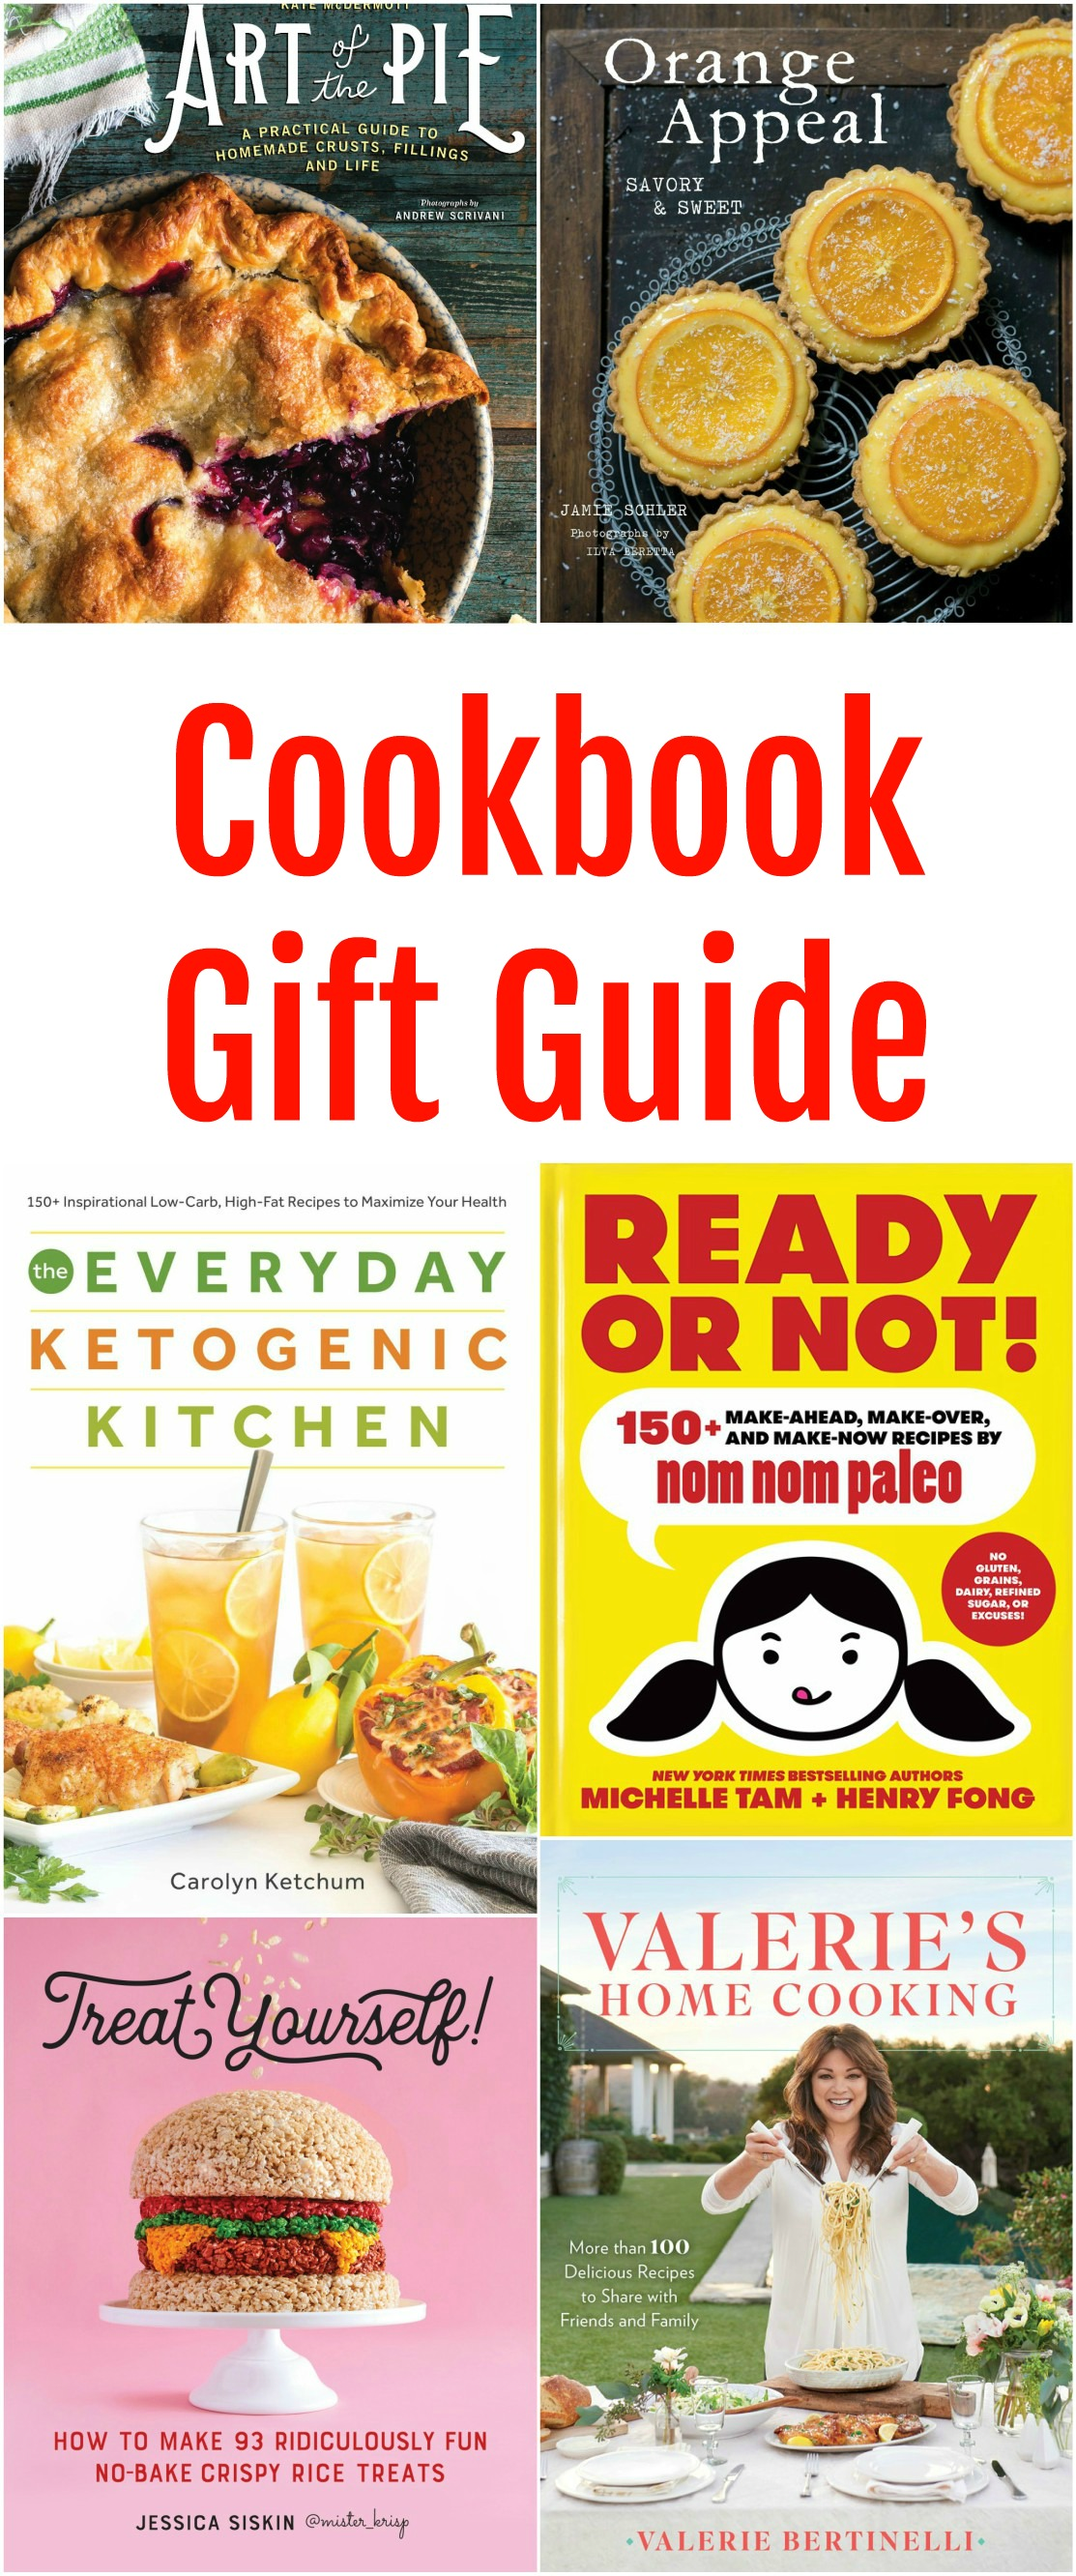 Cookbook Gift Guide for the Holidays on Shockingly Delicious